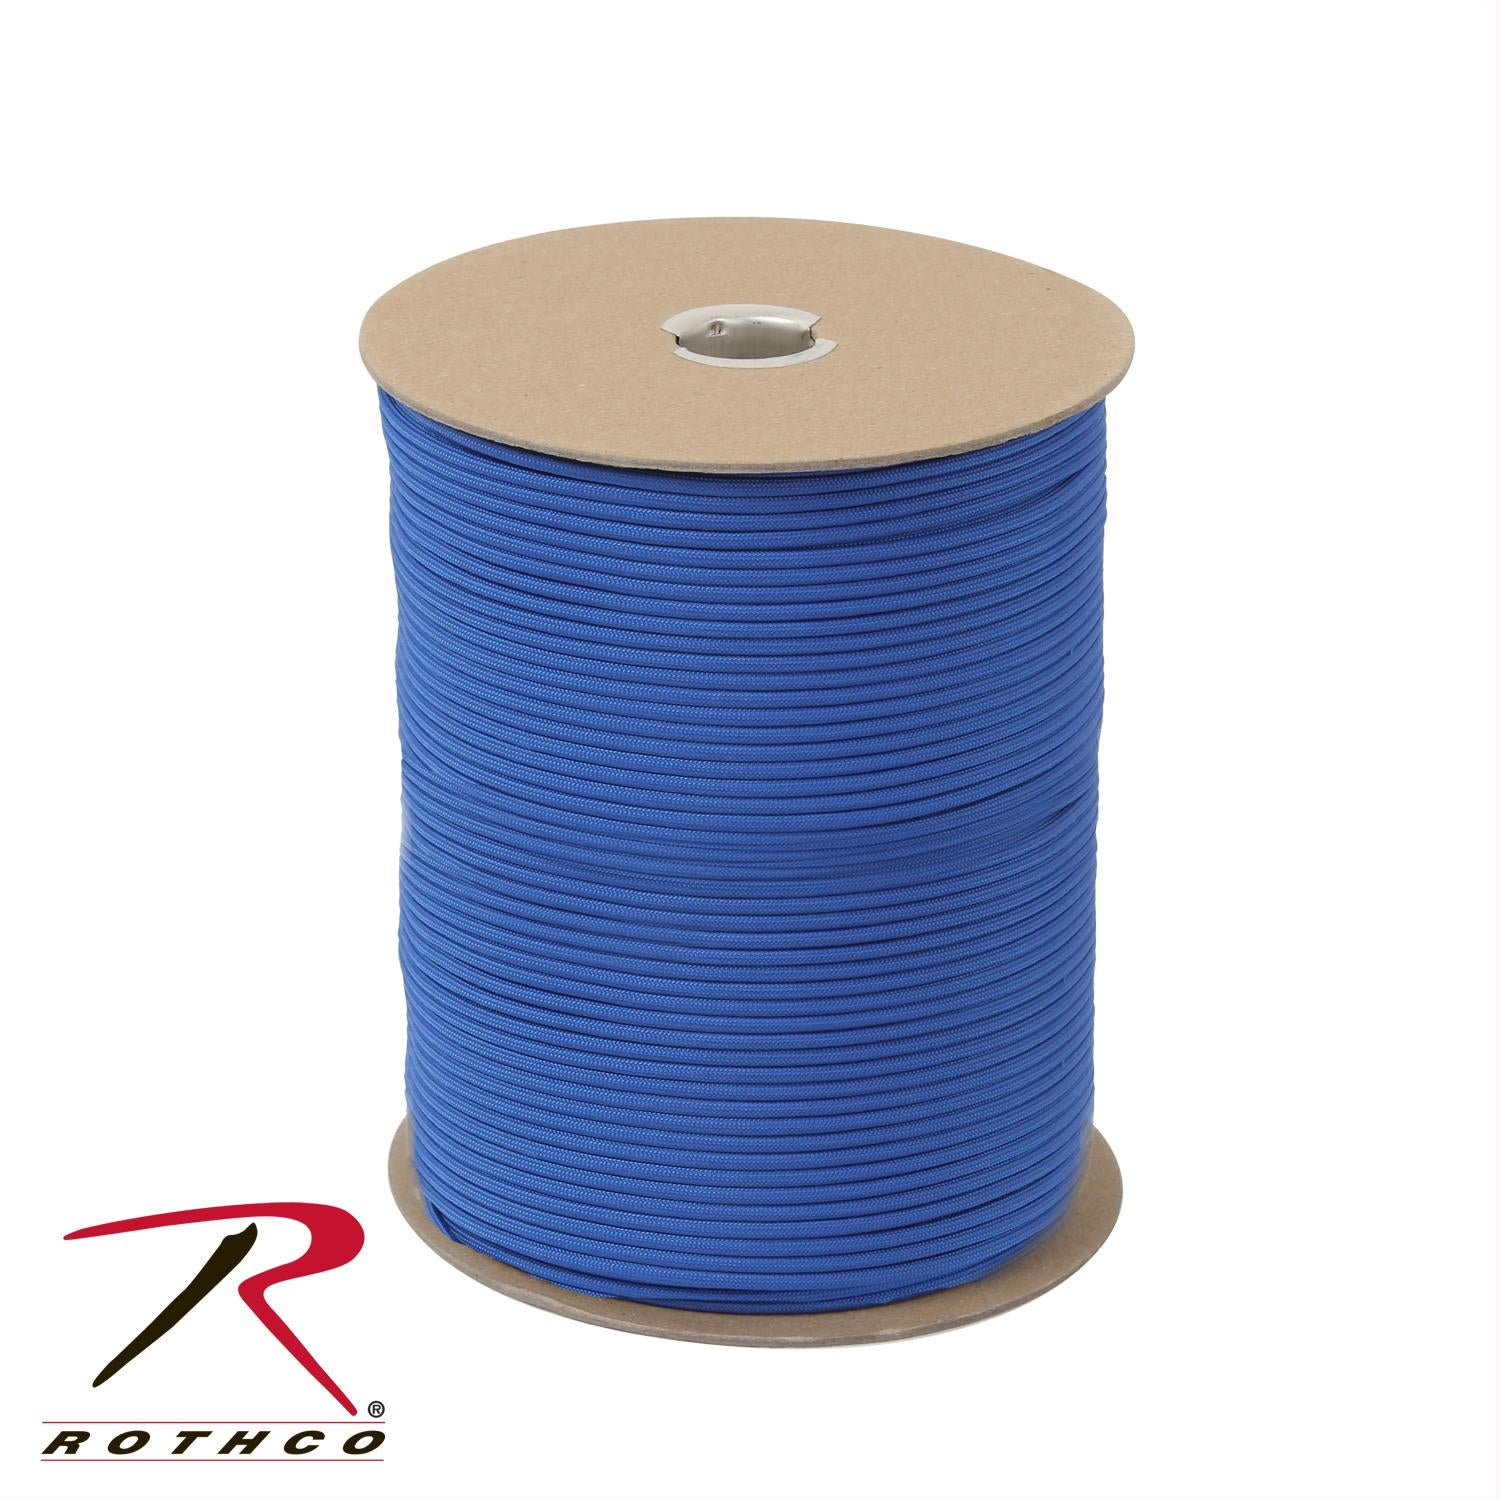 Rothco Nylon Paracord 550lb 1000 Ft Spool - Royal Blue